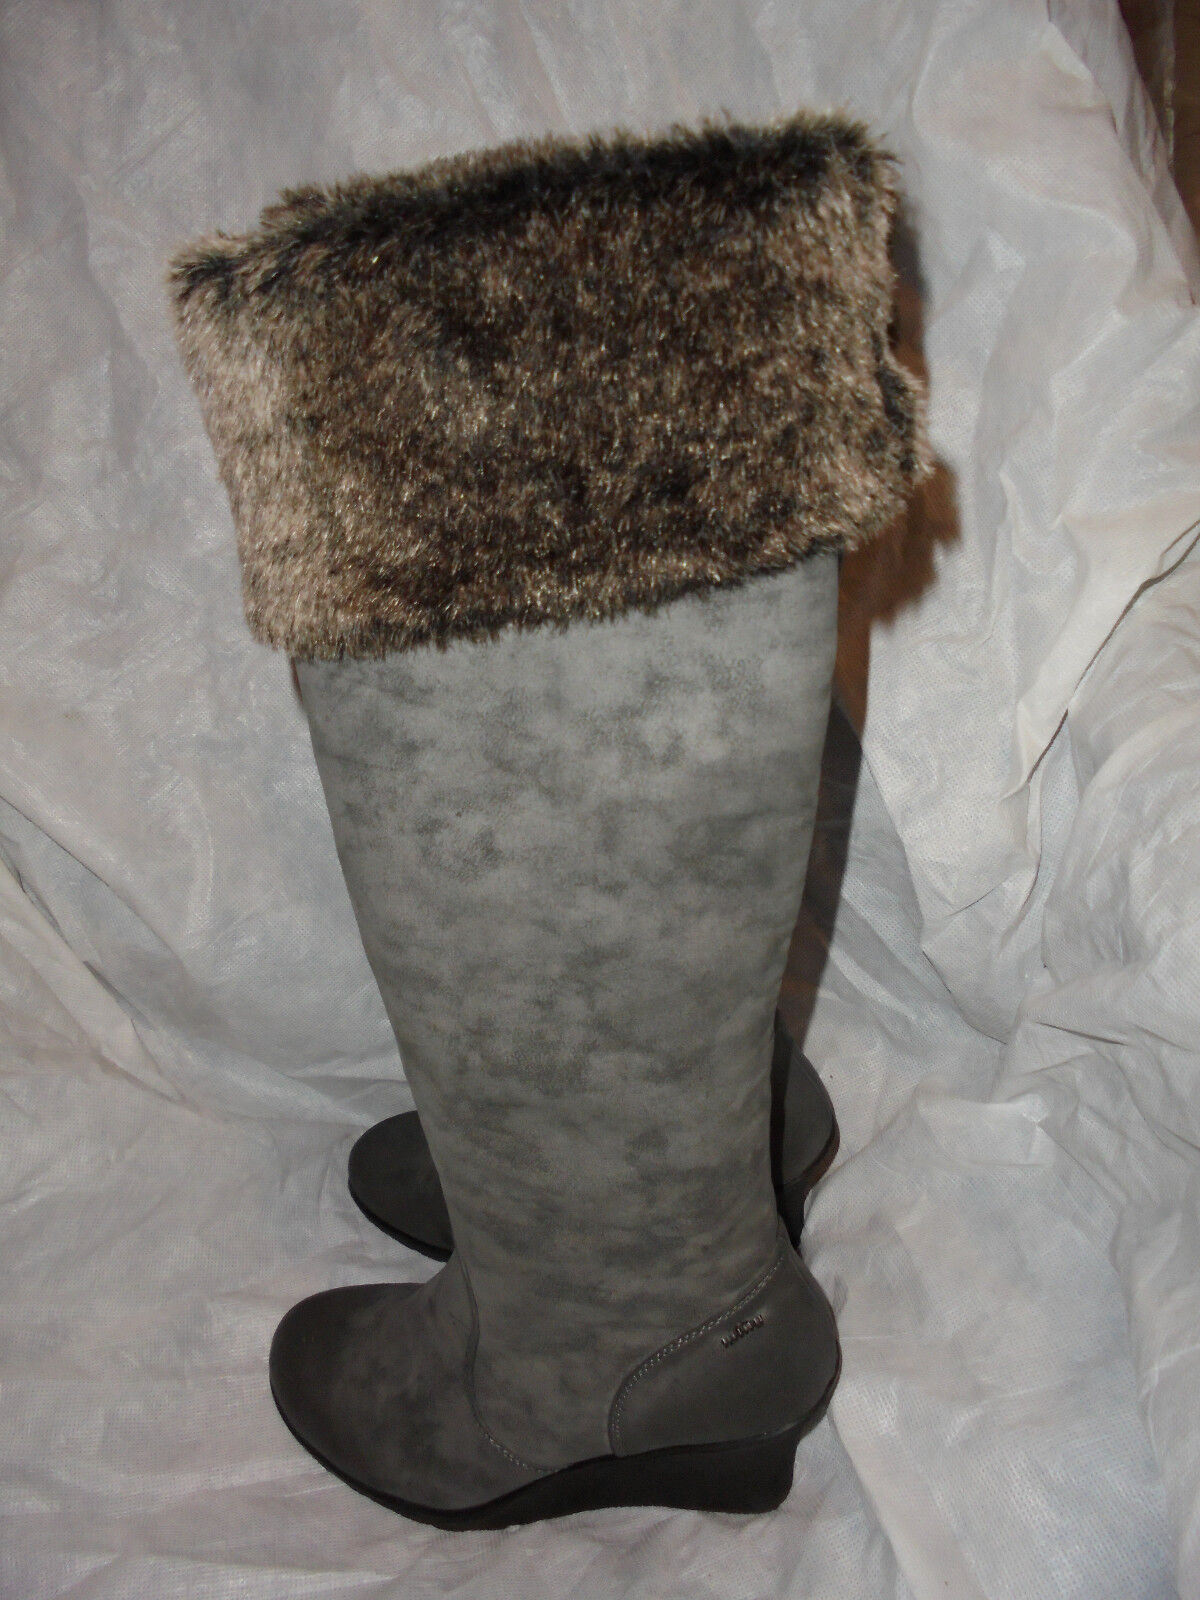 MTNG WOMEN'S GREY GREY GREY LEATHER PULL ON  ZIP KNEE HIGH BOOT + FUR  SIZE UK 7 EU 40 VGC b0991a